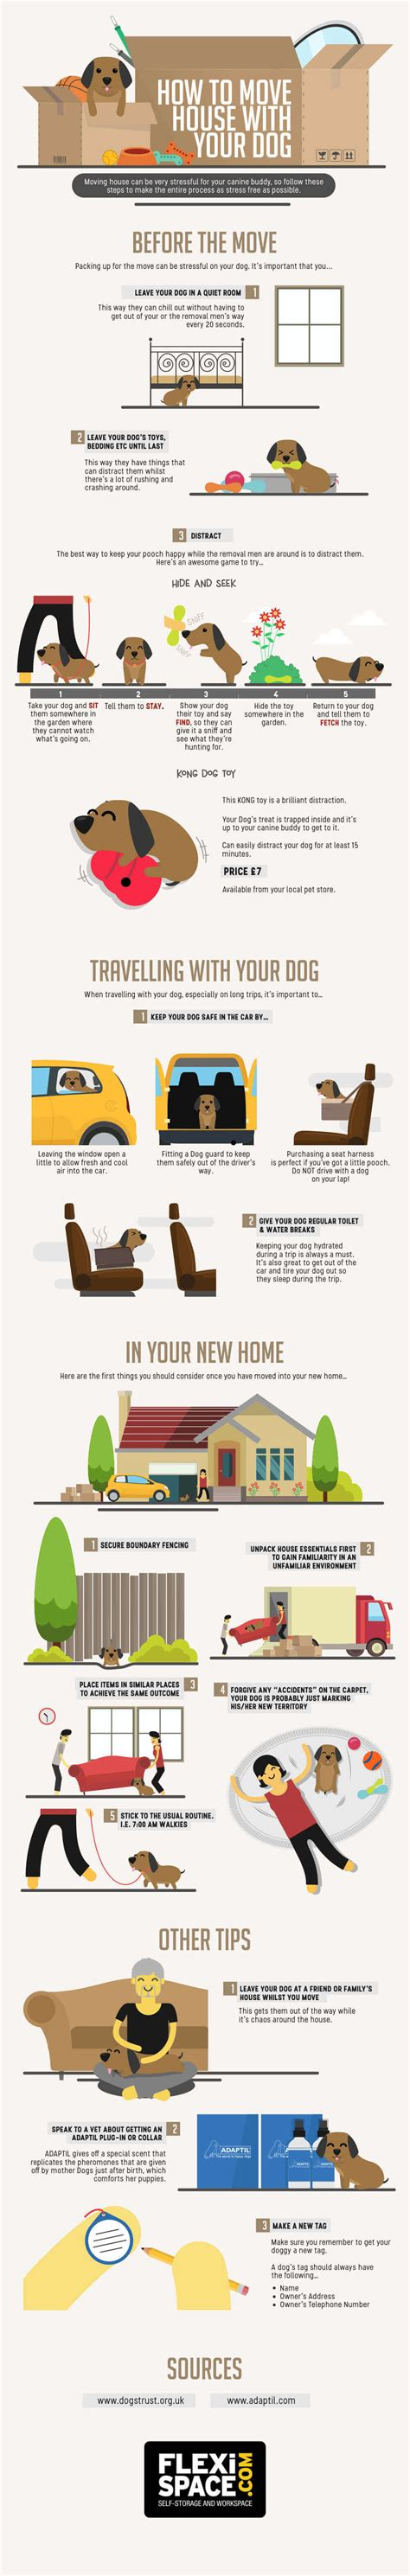 moving house with a dog infographic tips on moving house with your dog vanillapup